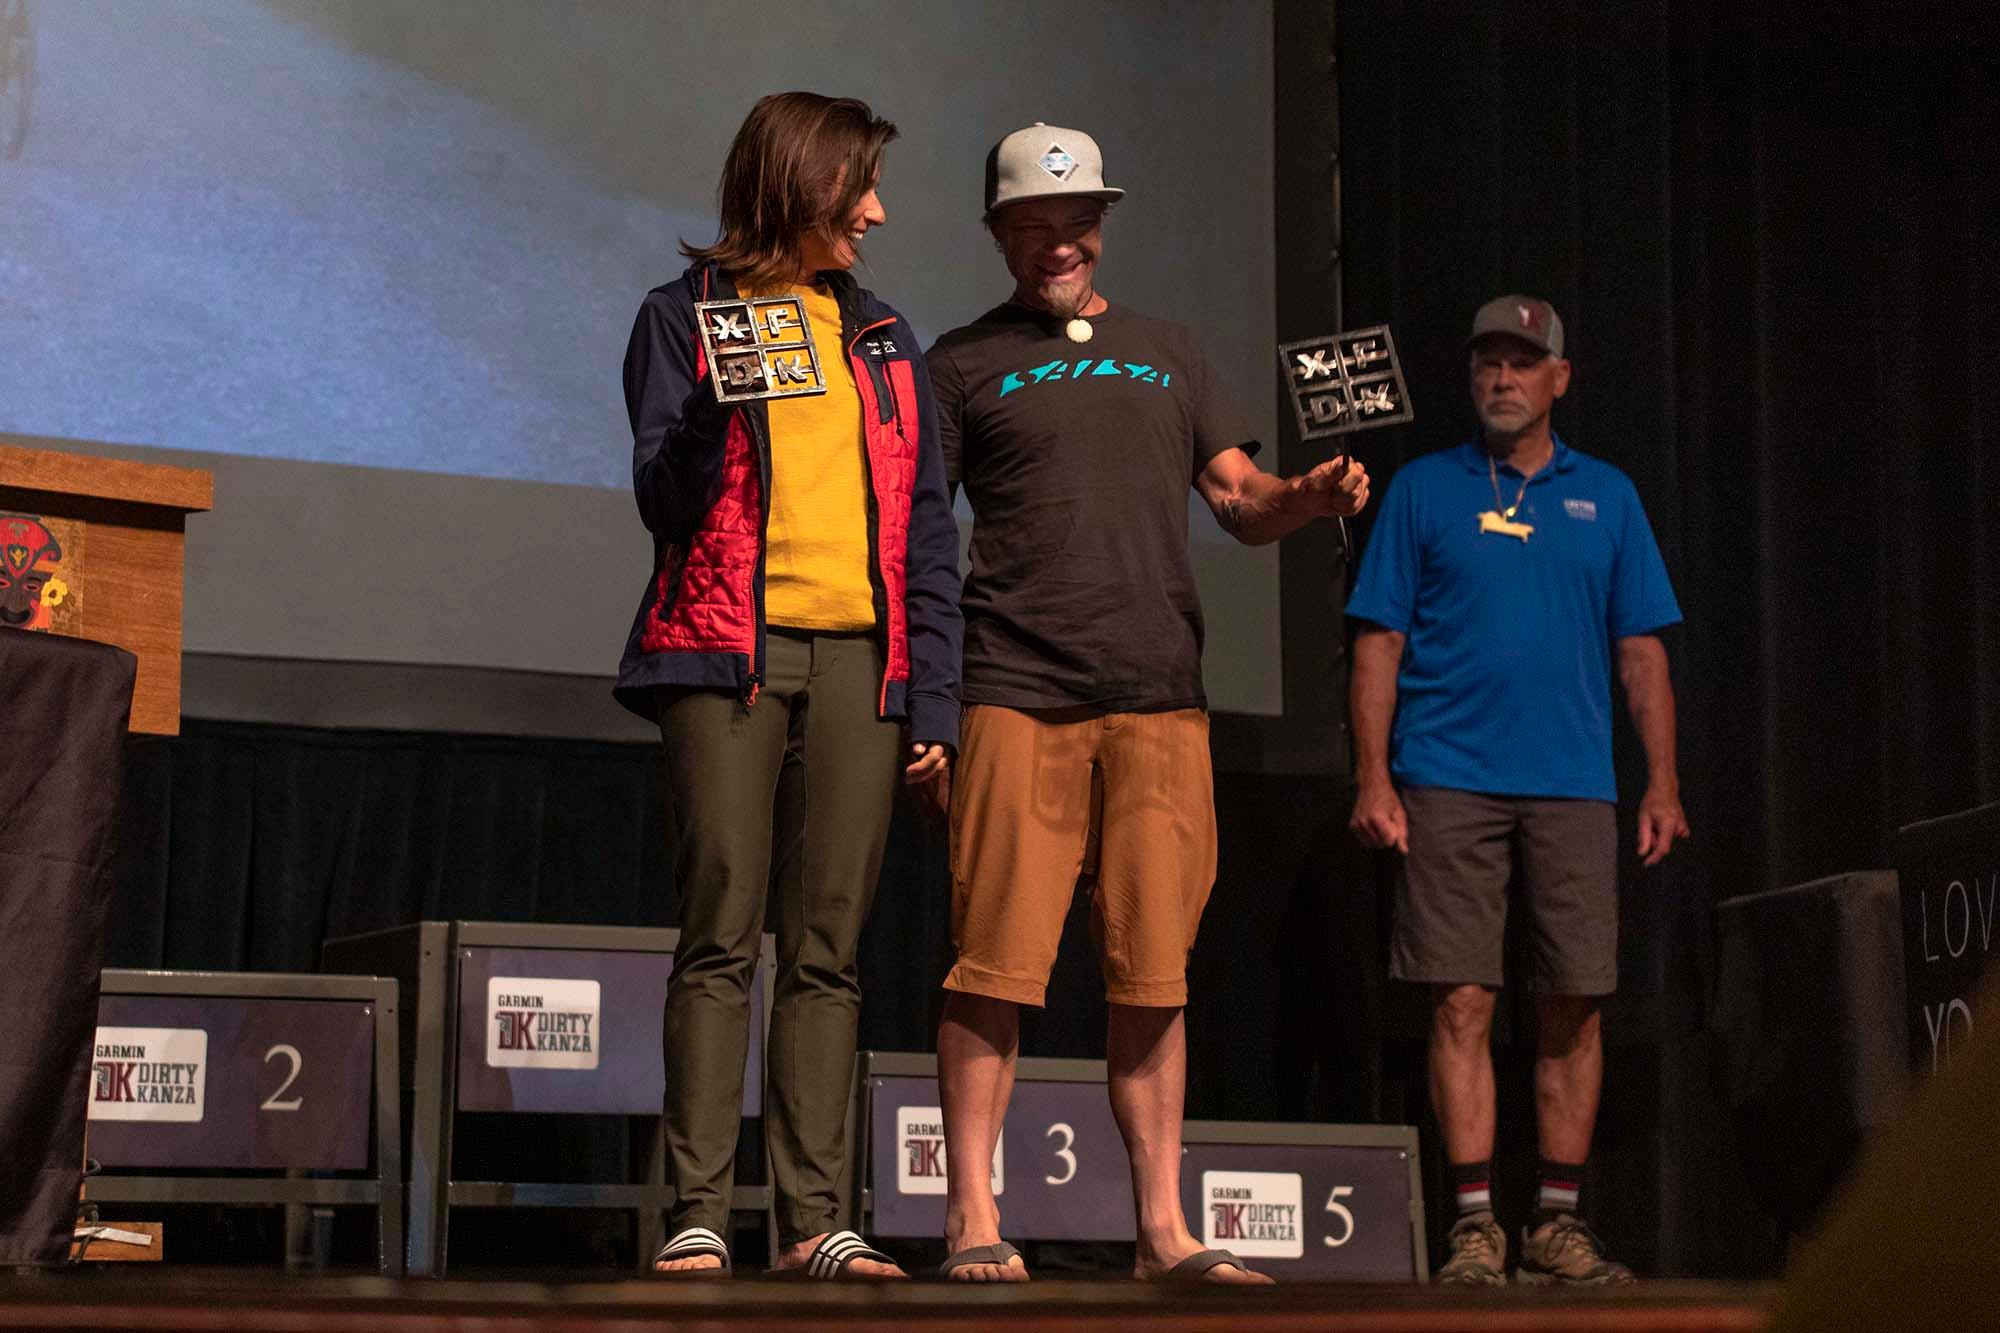 Lael Wilcox, the first female finisher, and Jay Petervary, the first male finisher, accept their DKXL brands. (Rugile Kaladyte)